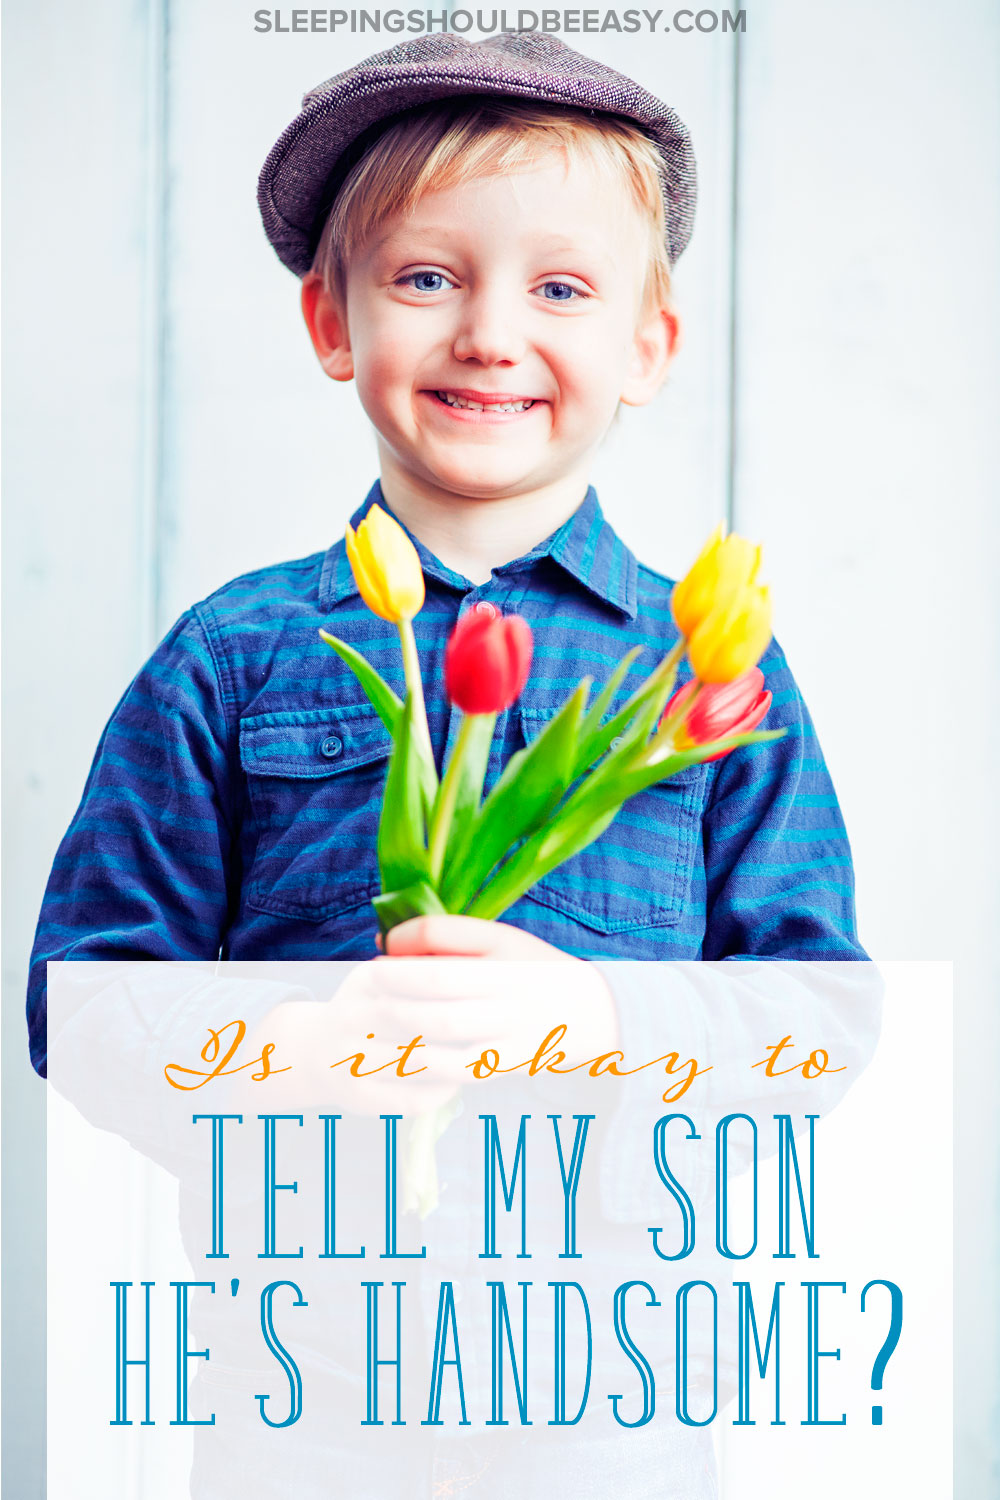 Do you tell your son he's handsome? Here's why I don't tell my son he's handsome and stay away from complimenting his looks.